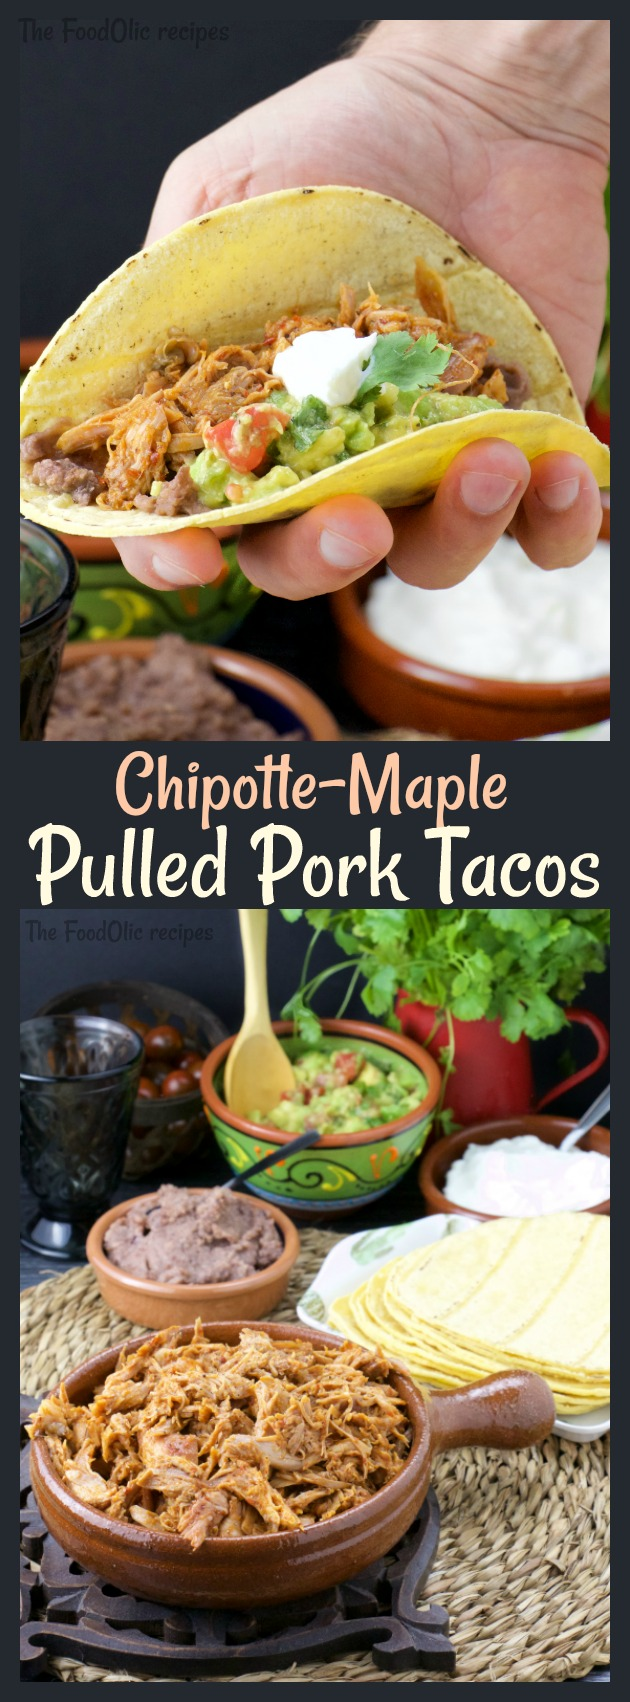 Chipotle-Maple Hot Tacos